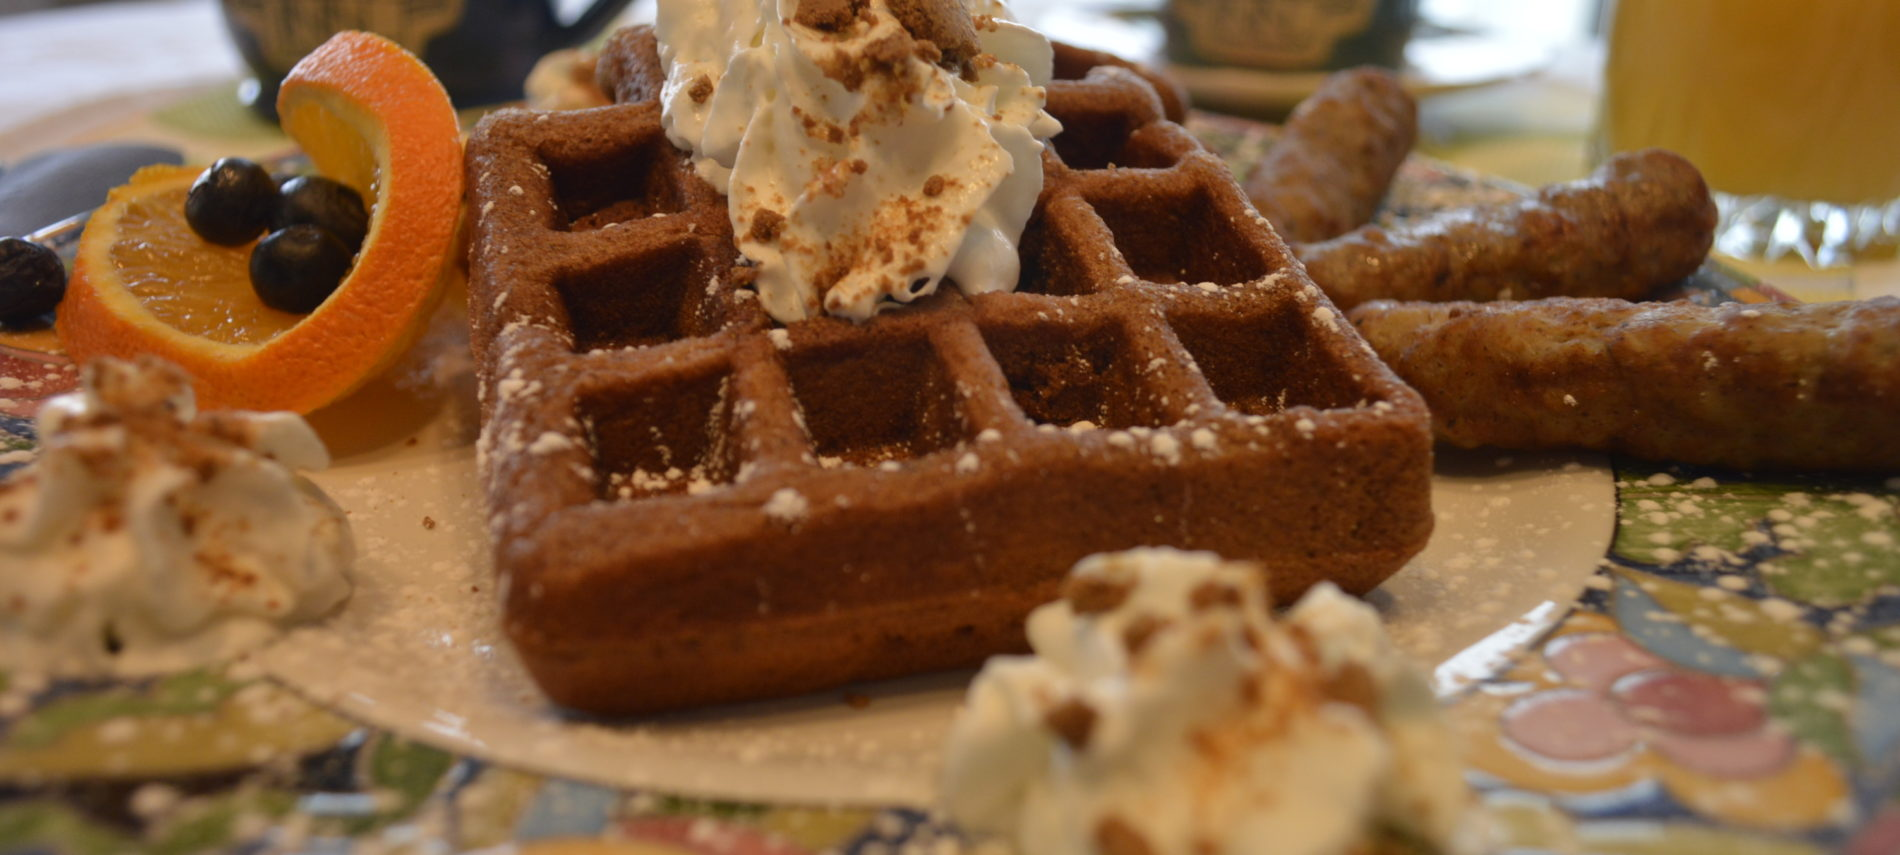 Gingerbread Waffles, Inn at Harbor Hill Marina